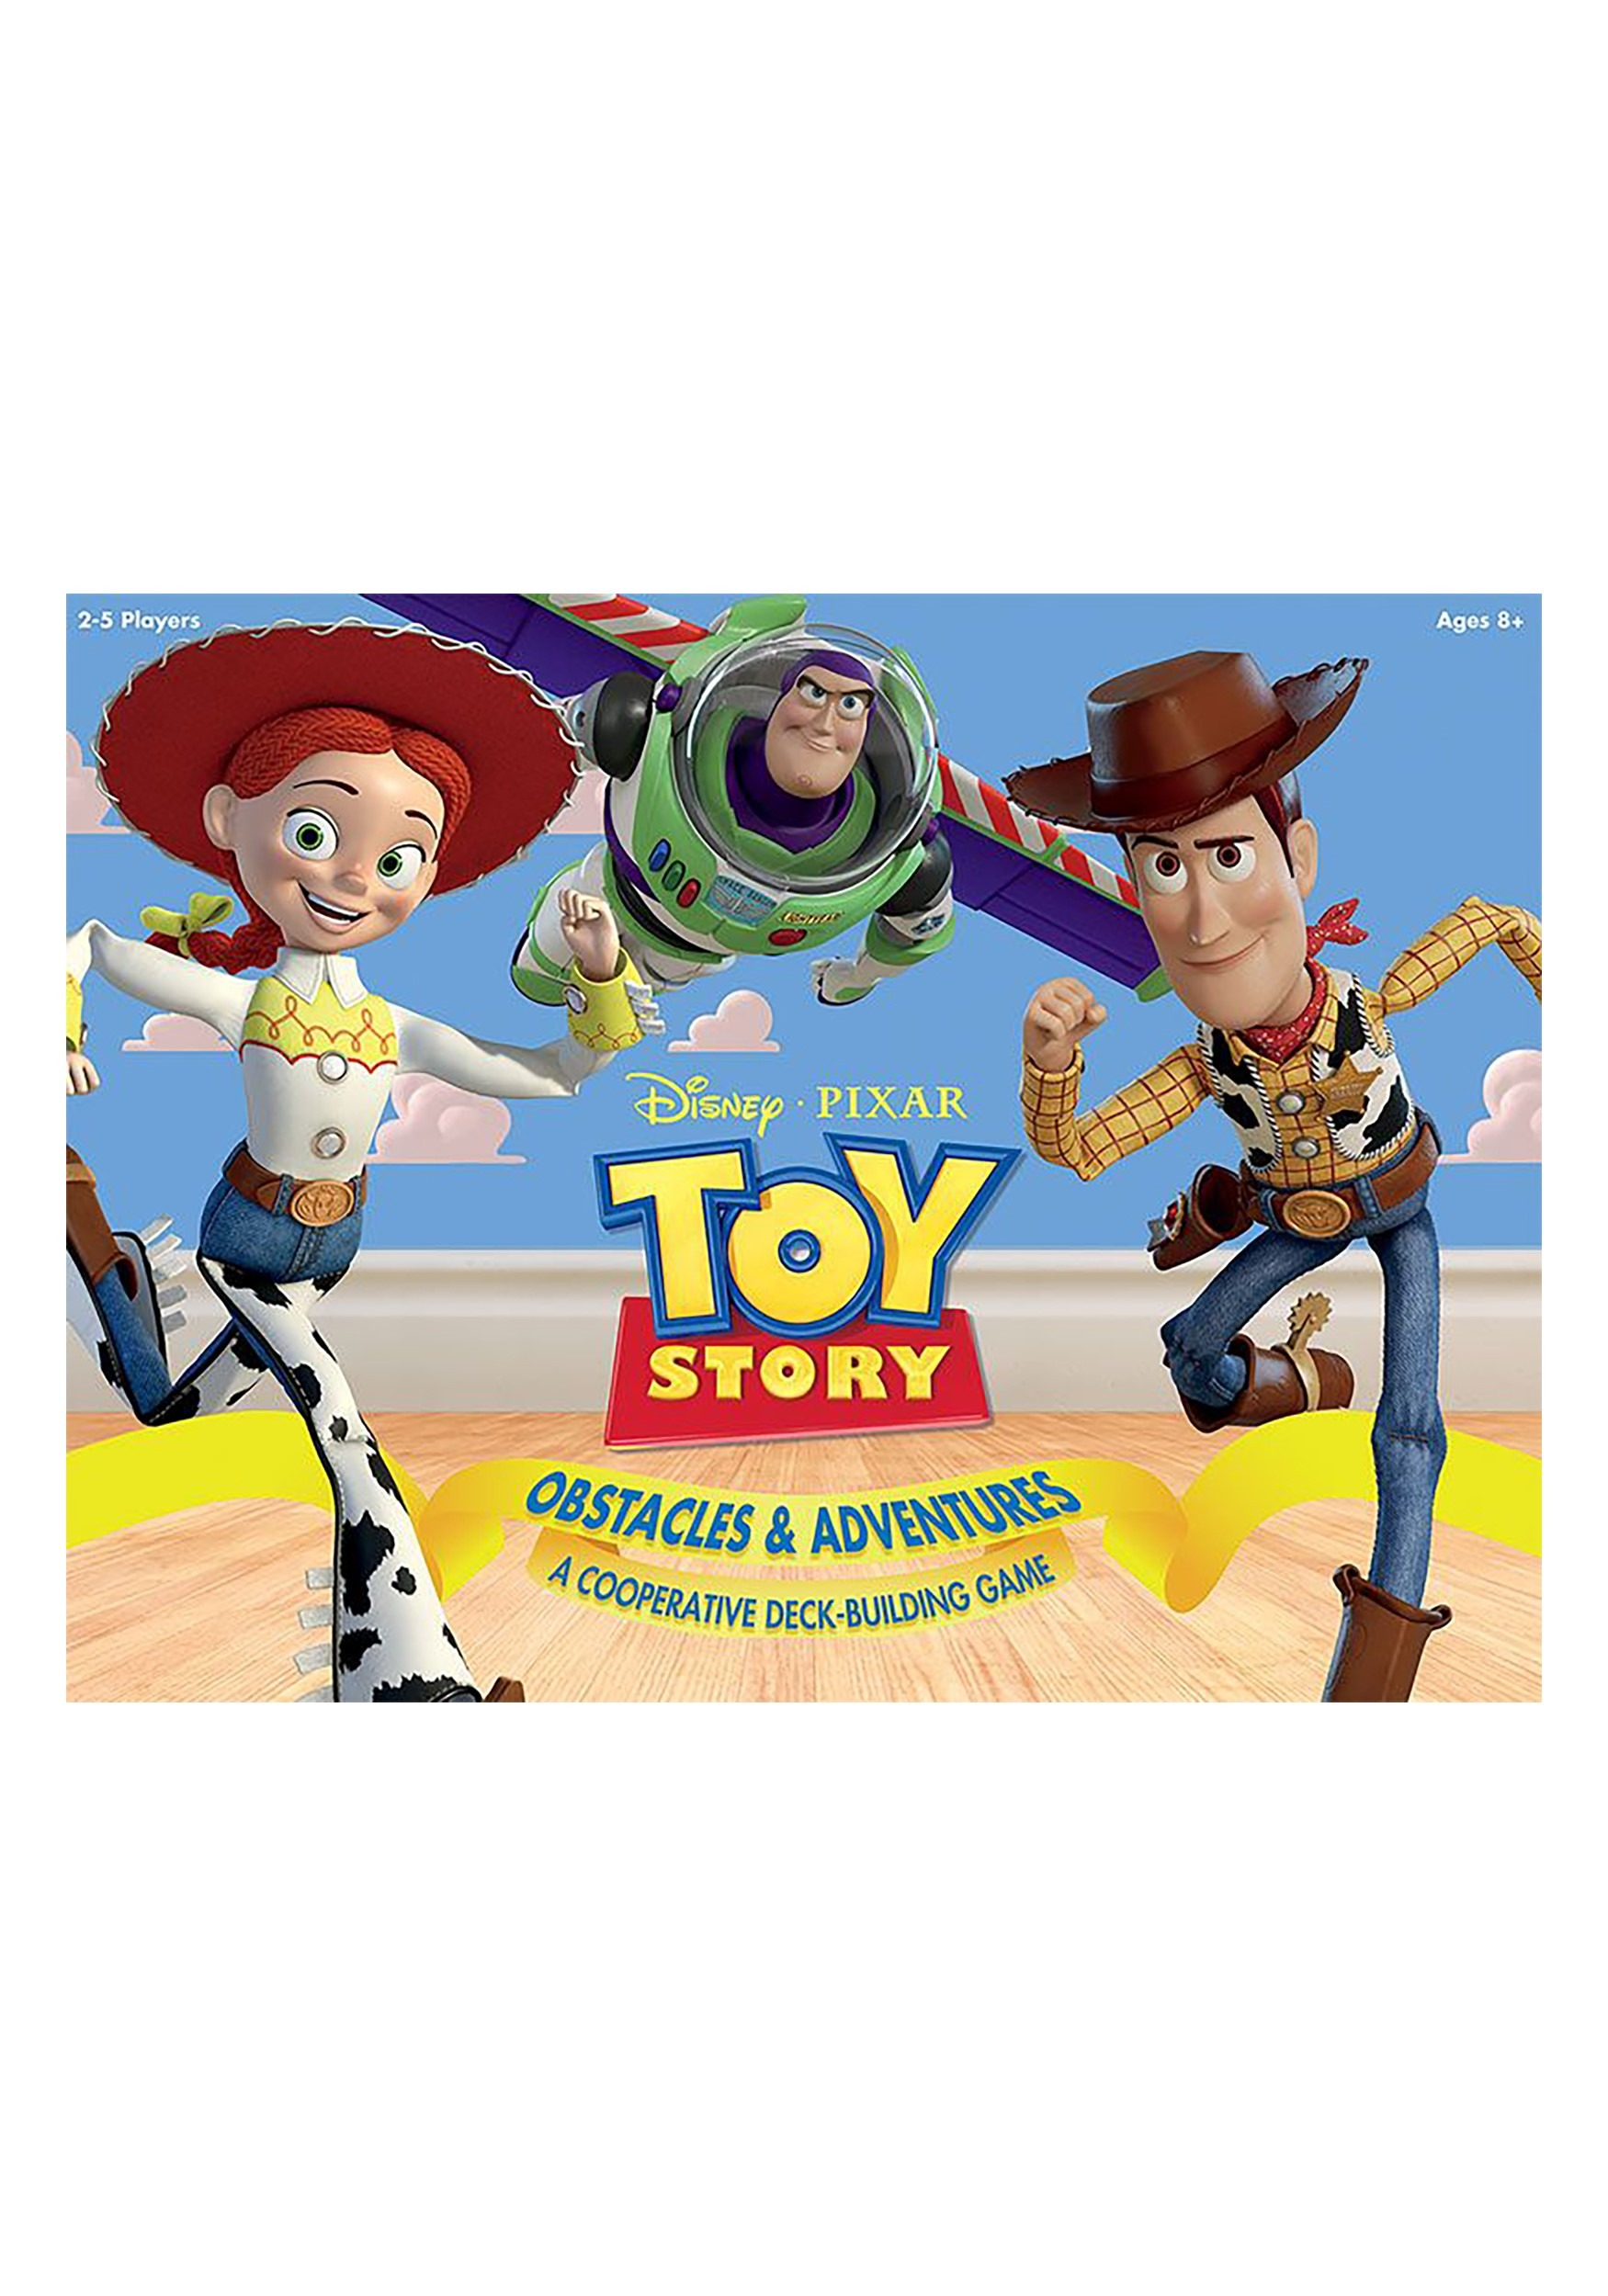 Toy Story Cooperative Deck Building Battle Box Game